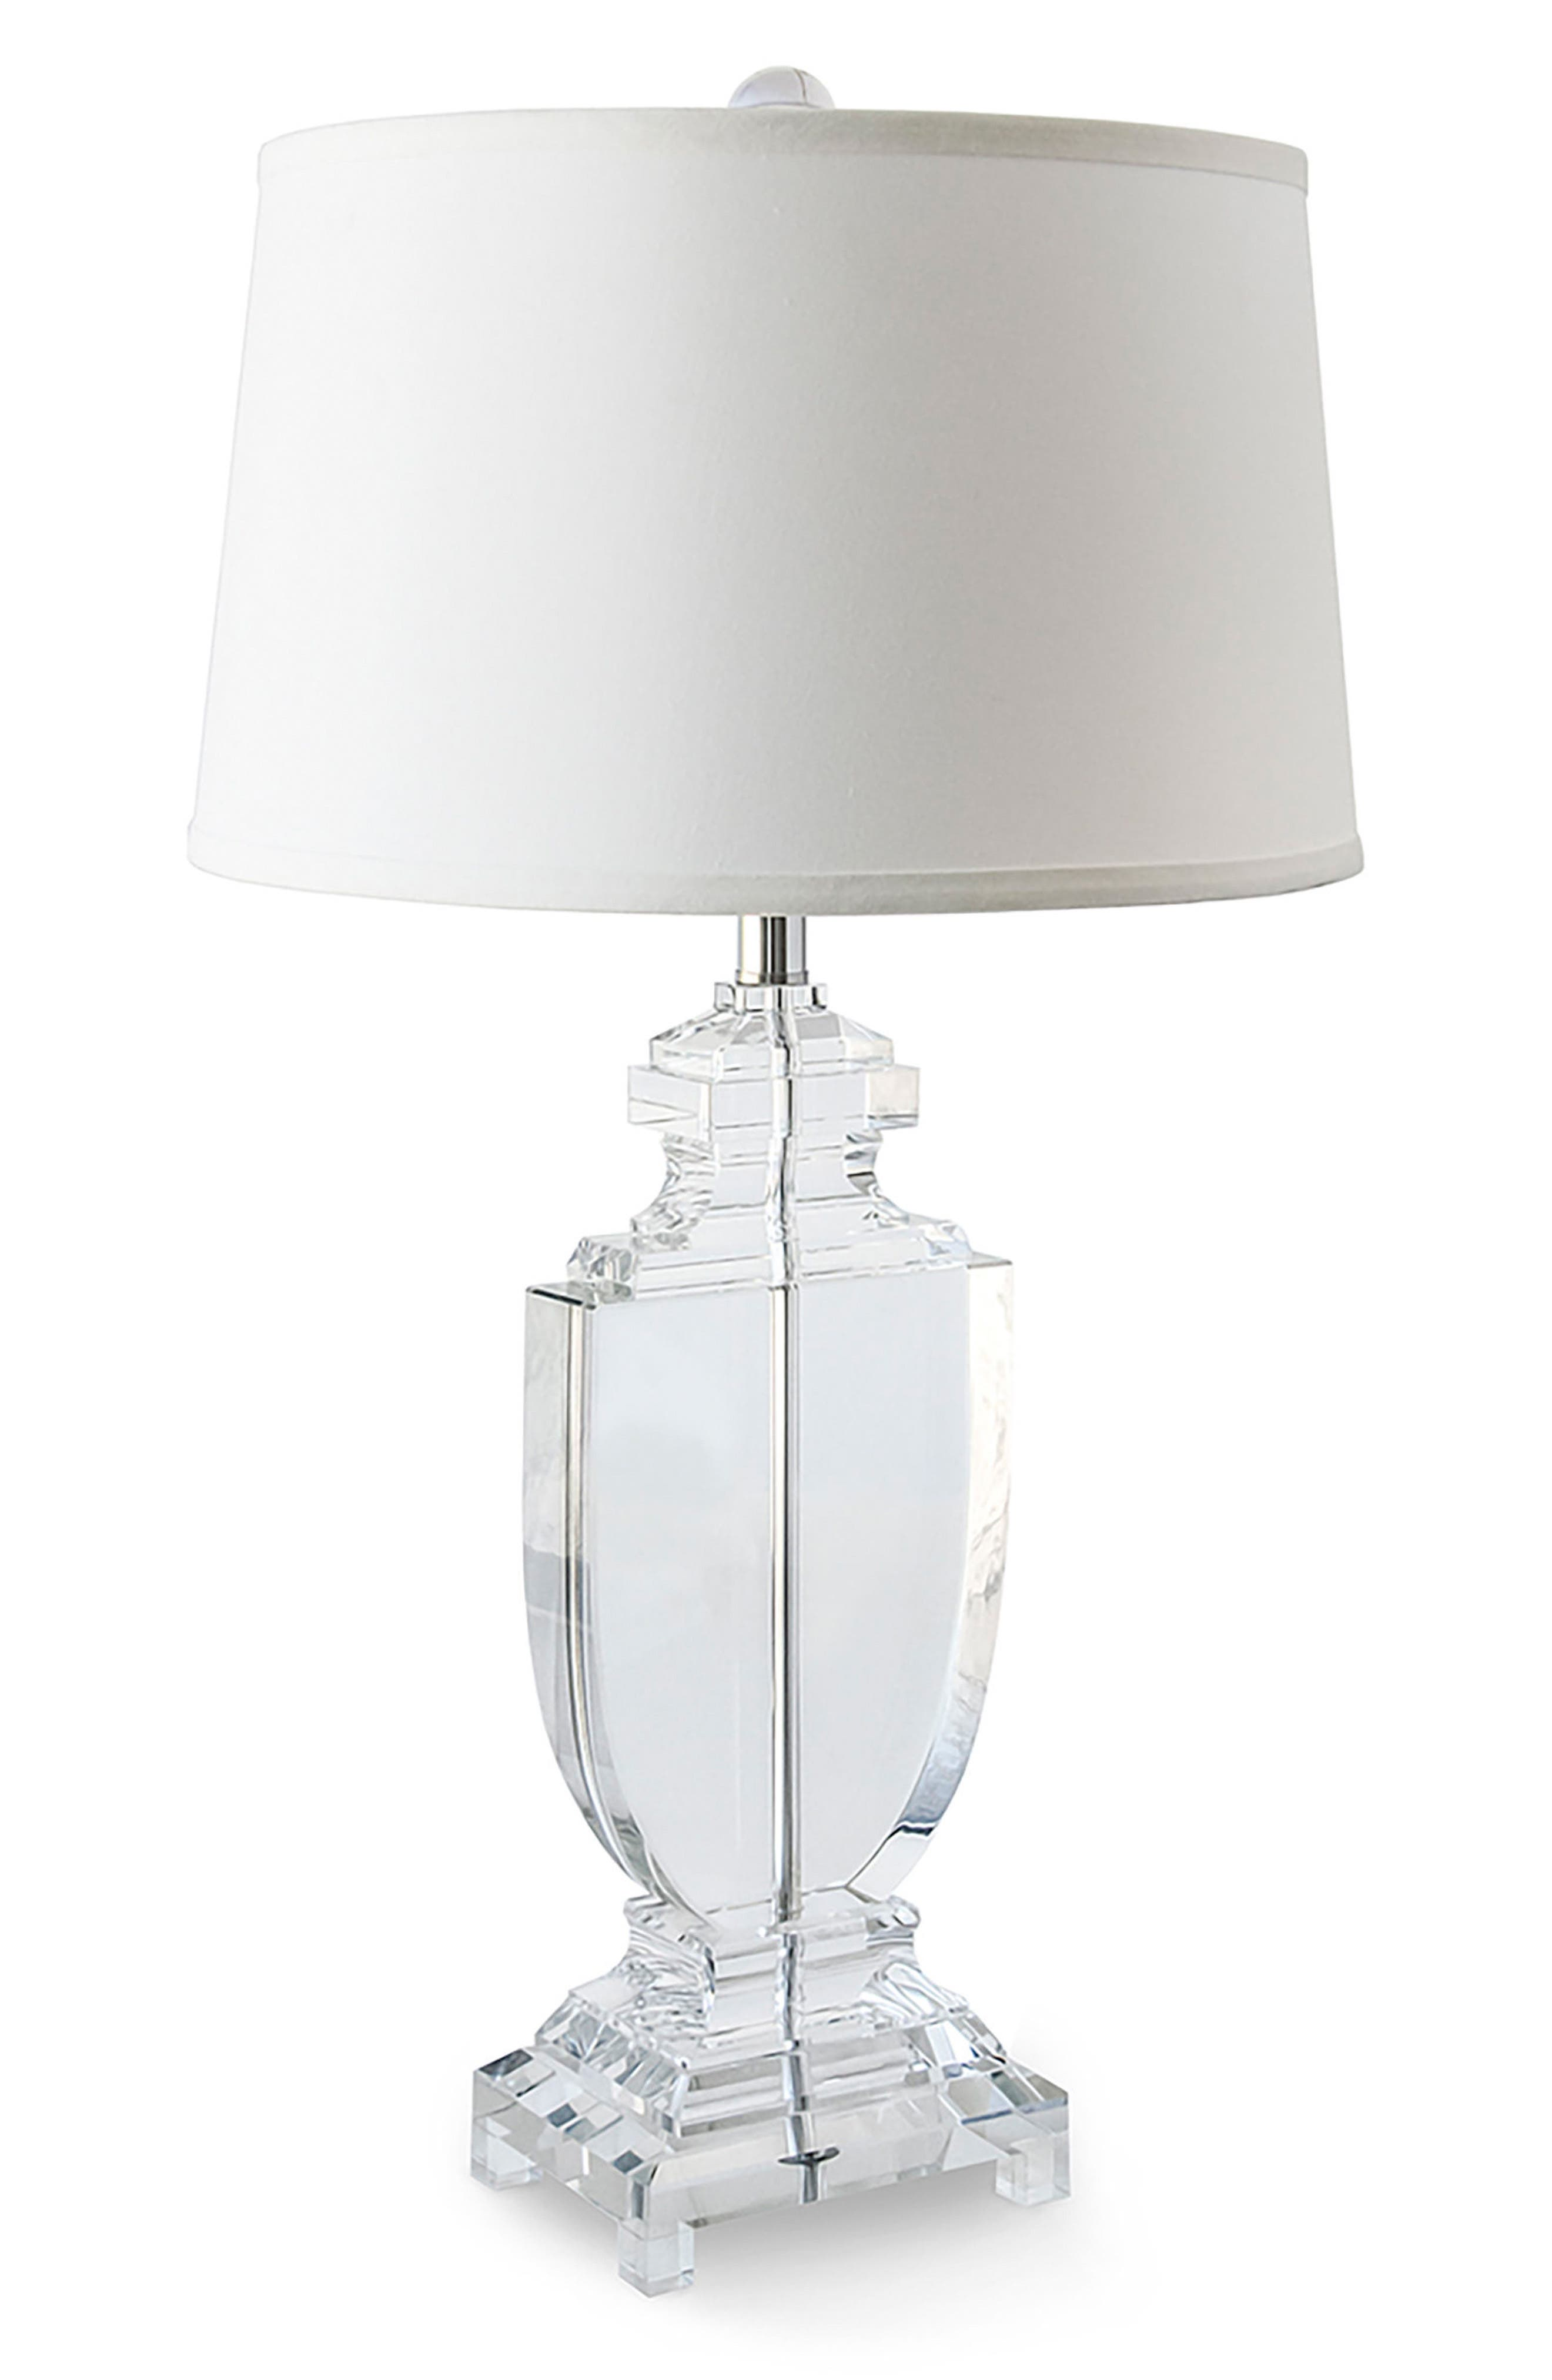 Urn Table Lamp,                         Main,                         color, White